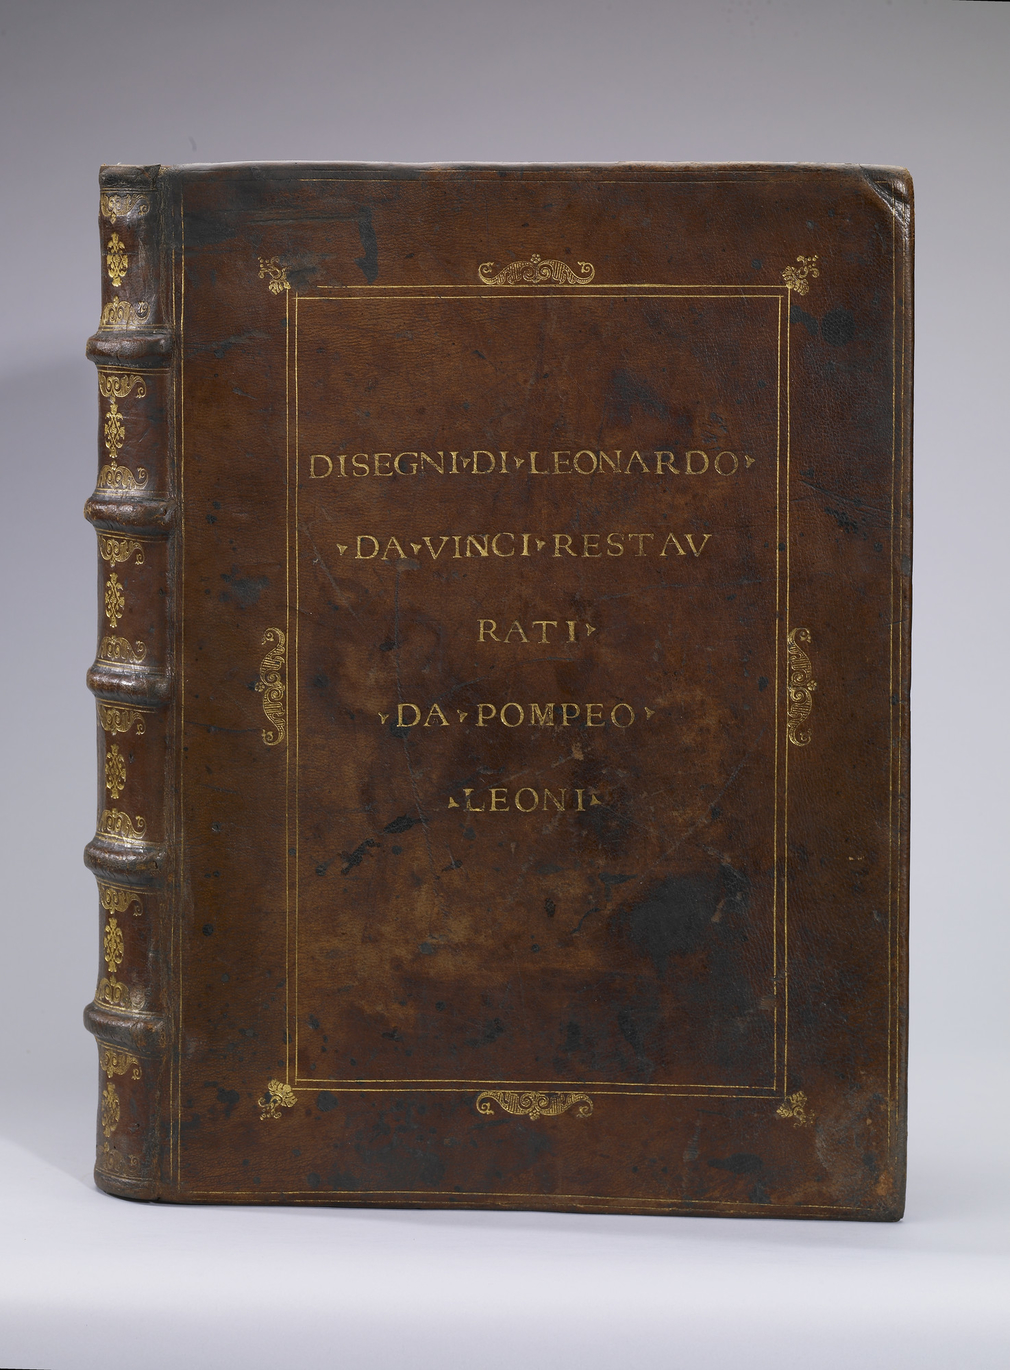 This is the binding of the album made up for Pompeo Leoni in the late sixteenth century to house over 500 of Leonardo's drawings, including all the anatomical studies now known. The album was brought to England, probably by the agents of Thomas Howa